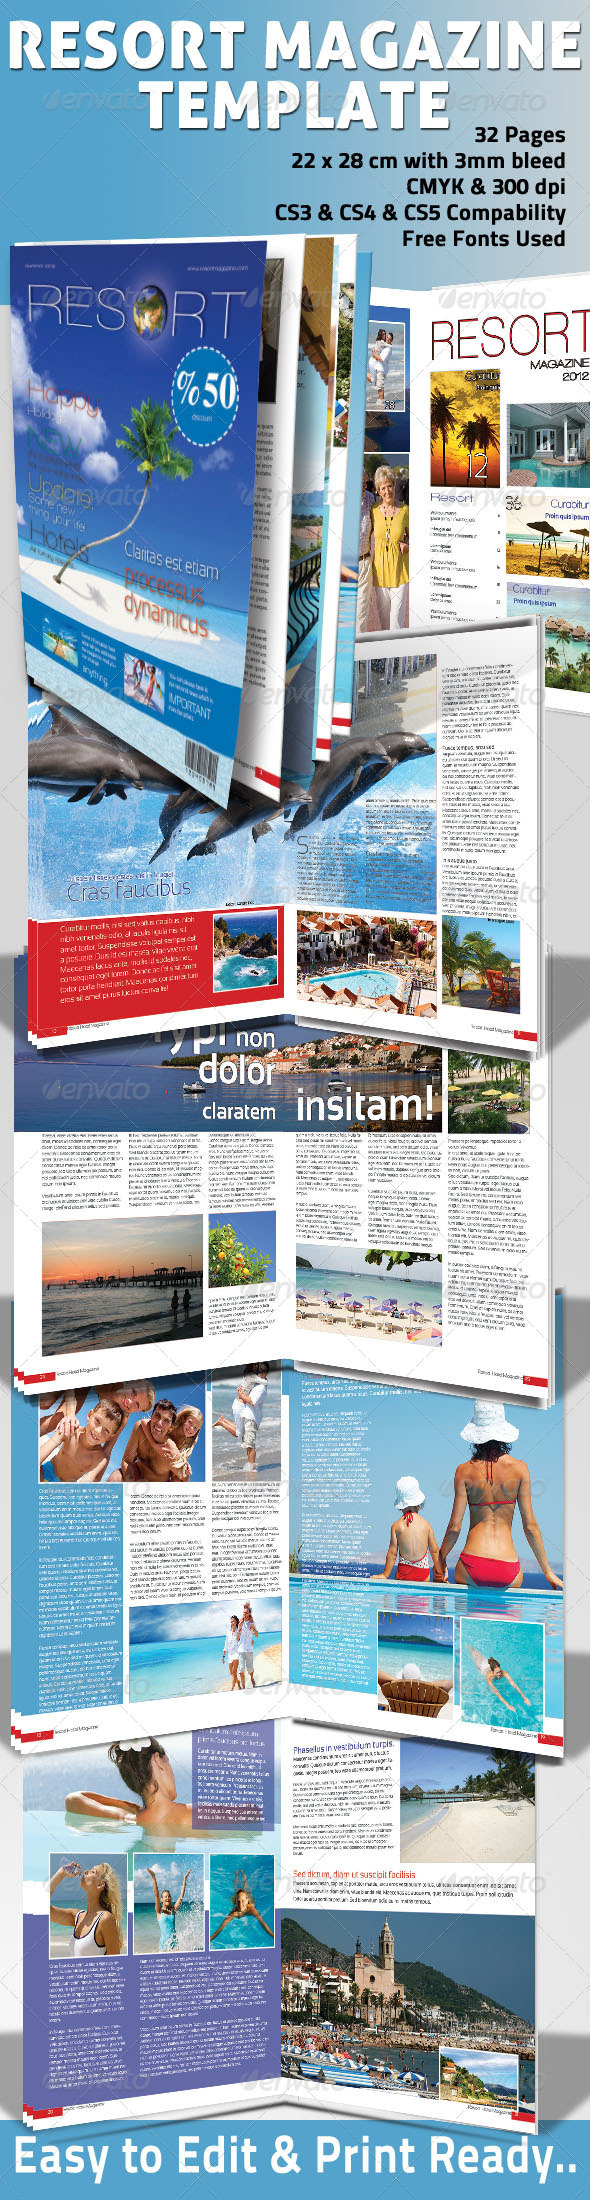 Resort Magazine Template - Magazines Print Templates